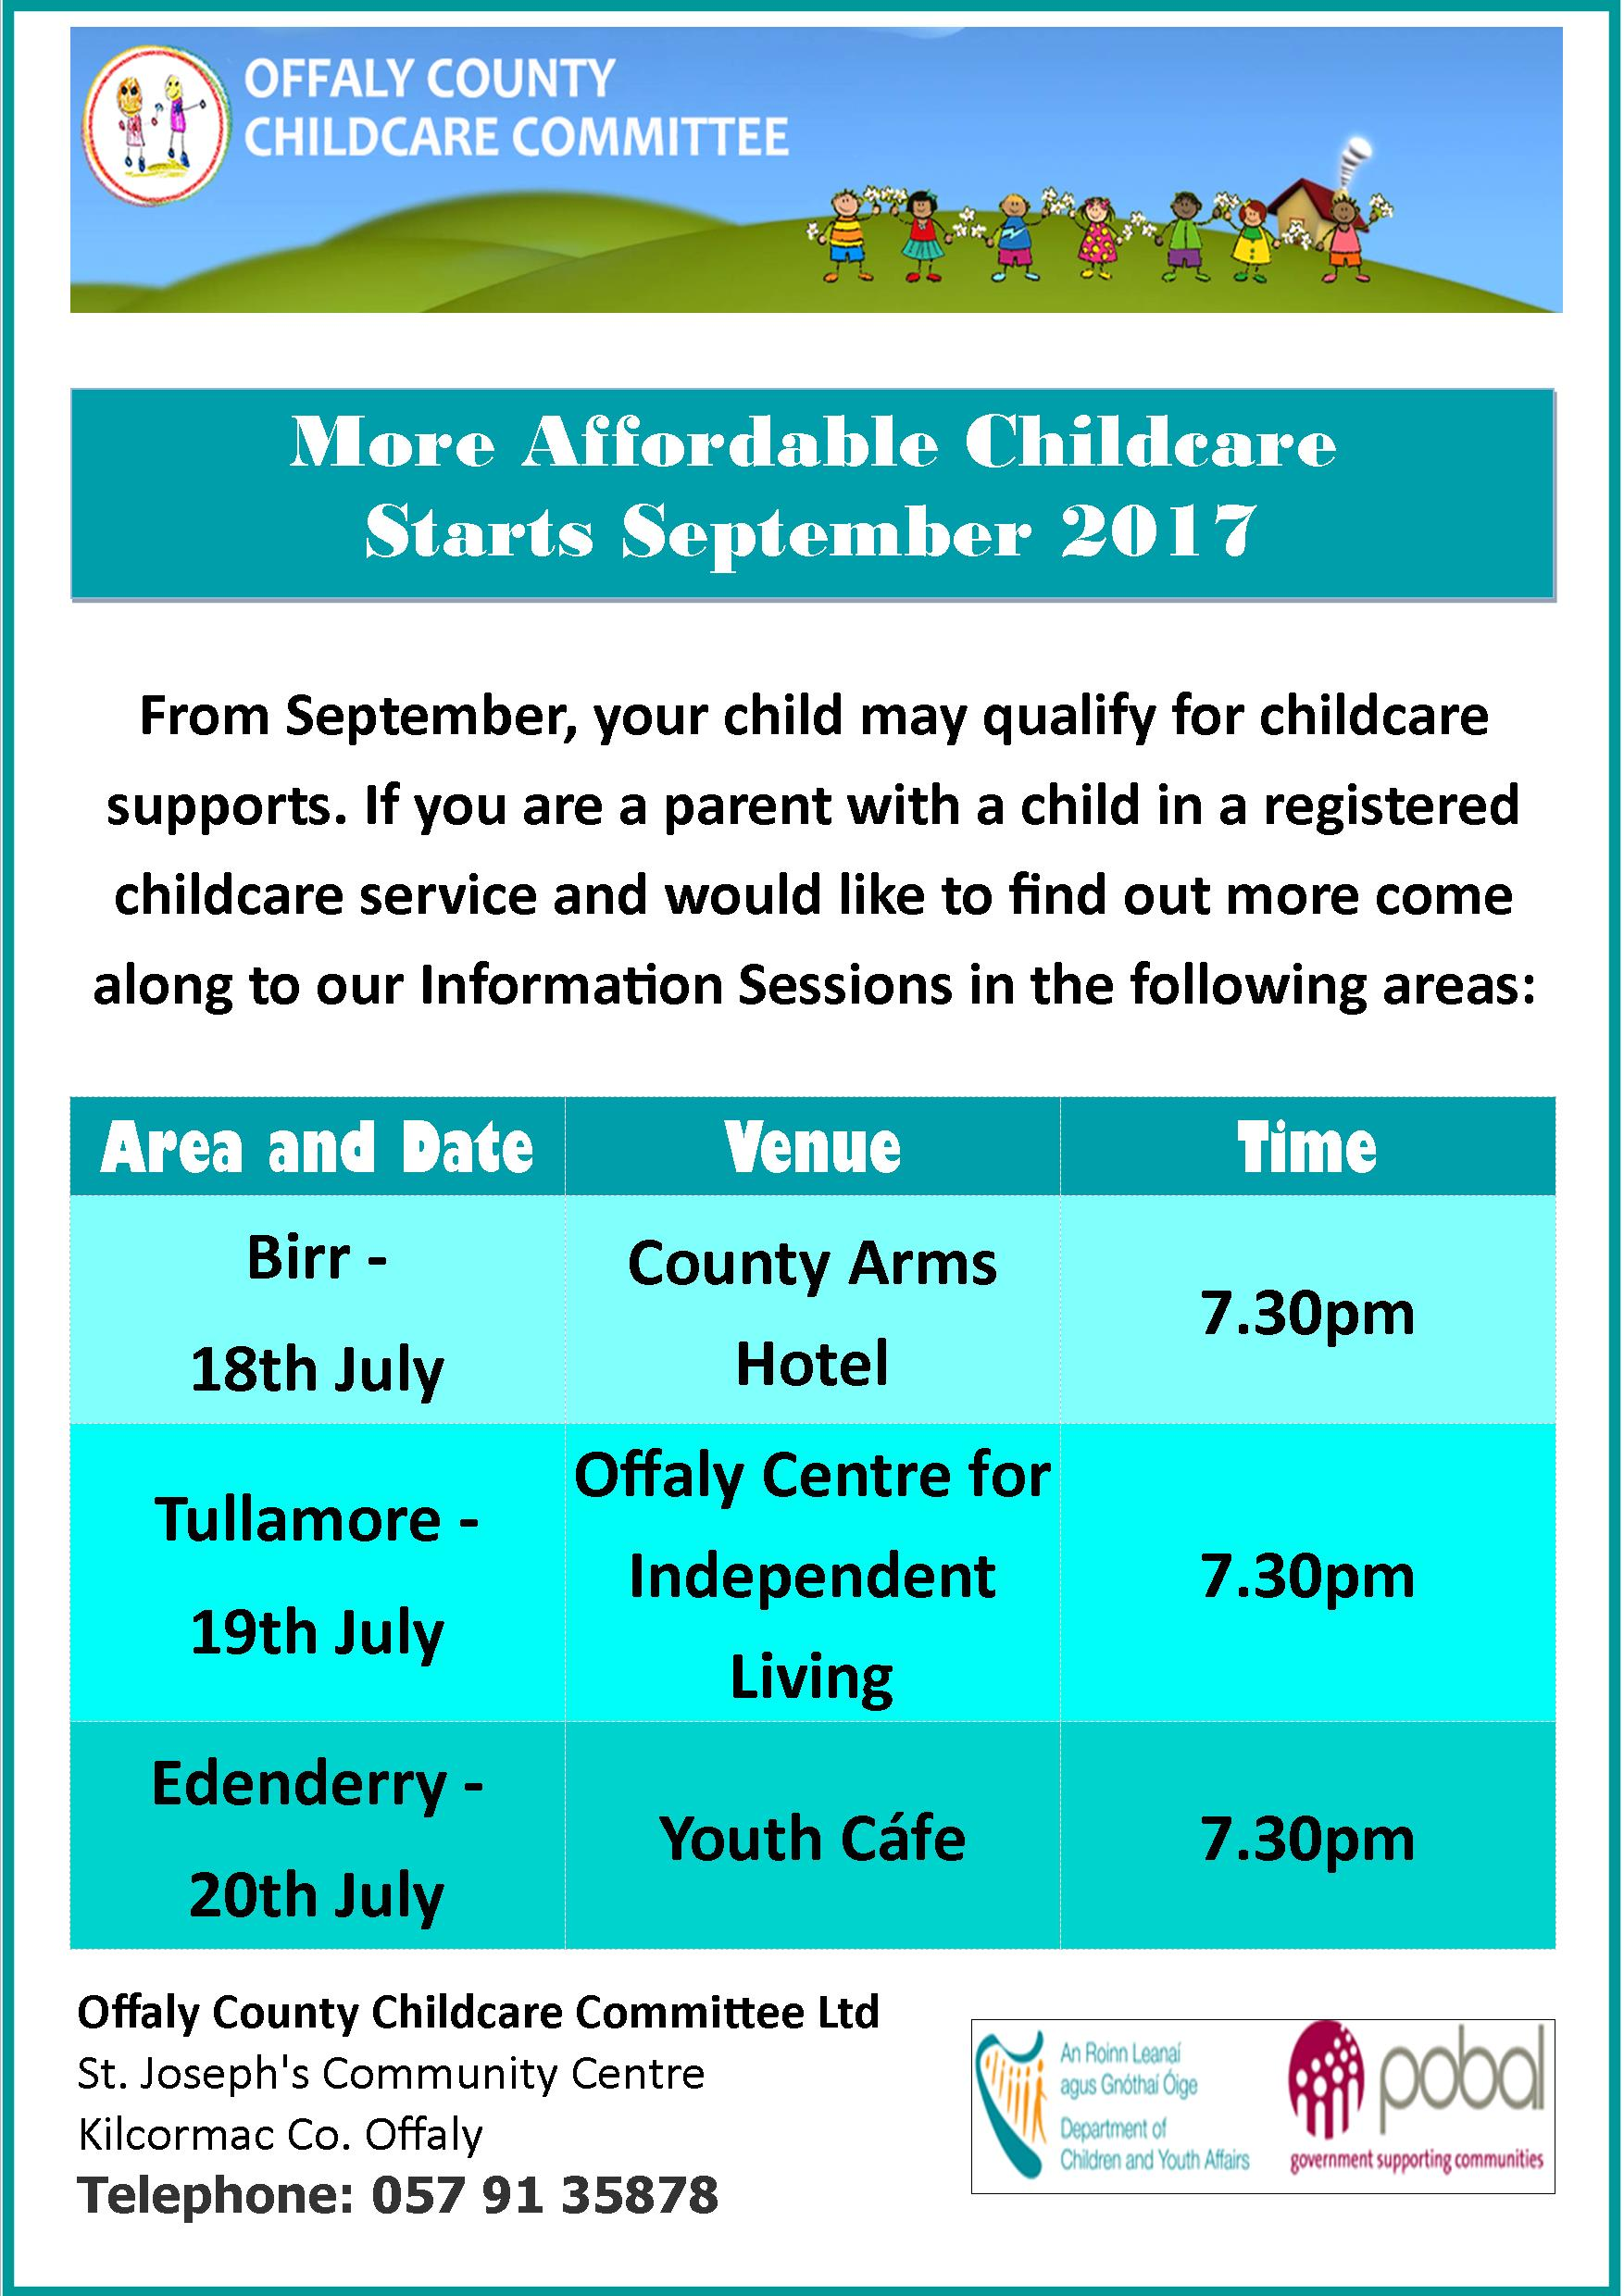 More Affordable Childcare inforamtion sessions 2017